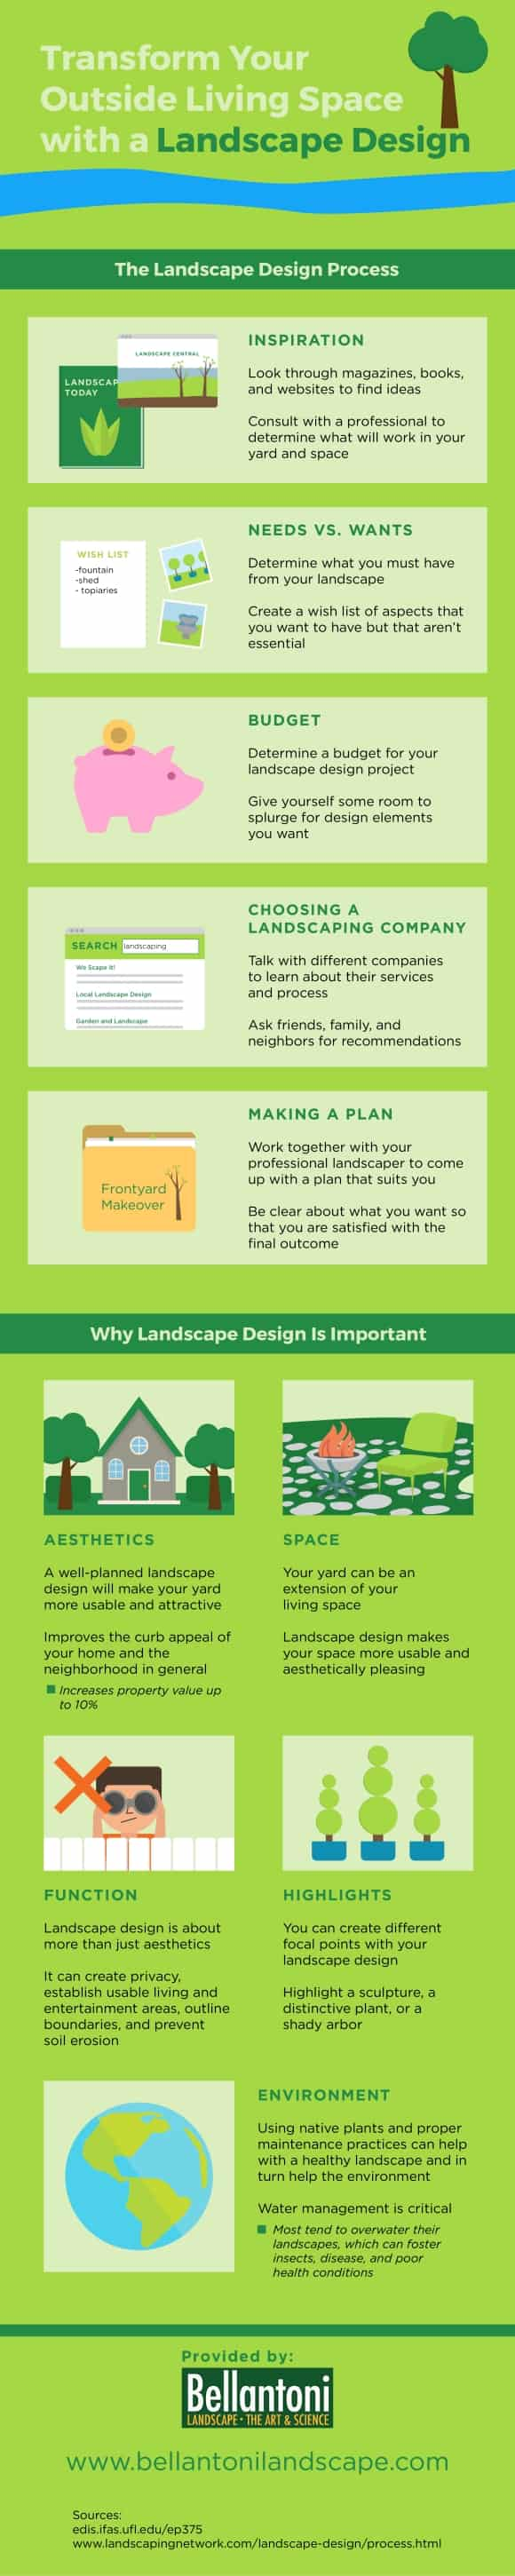 Infographic About Landscape Design